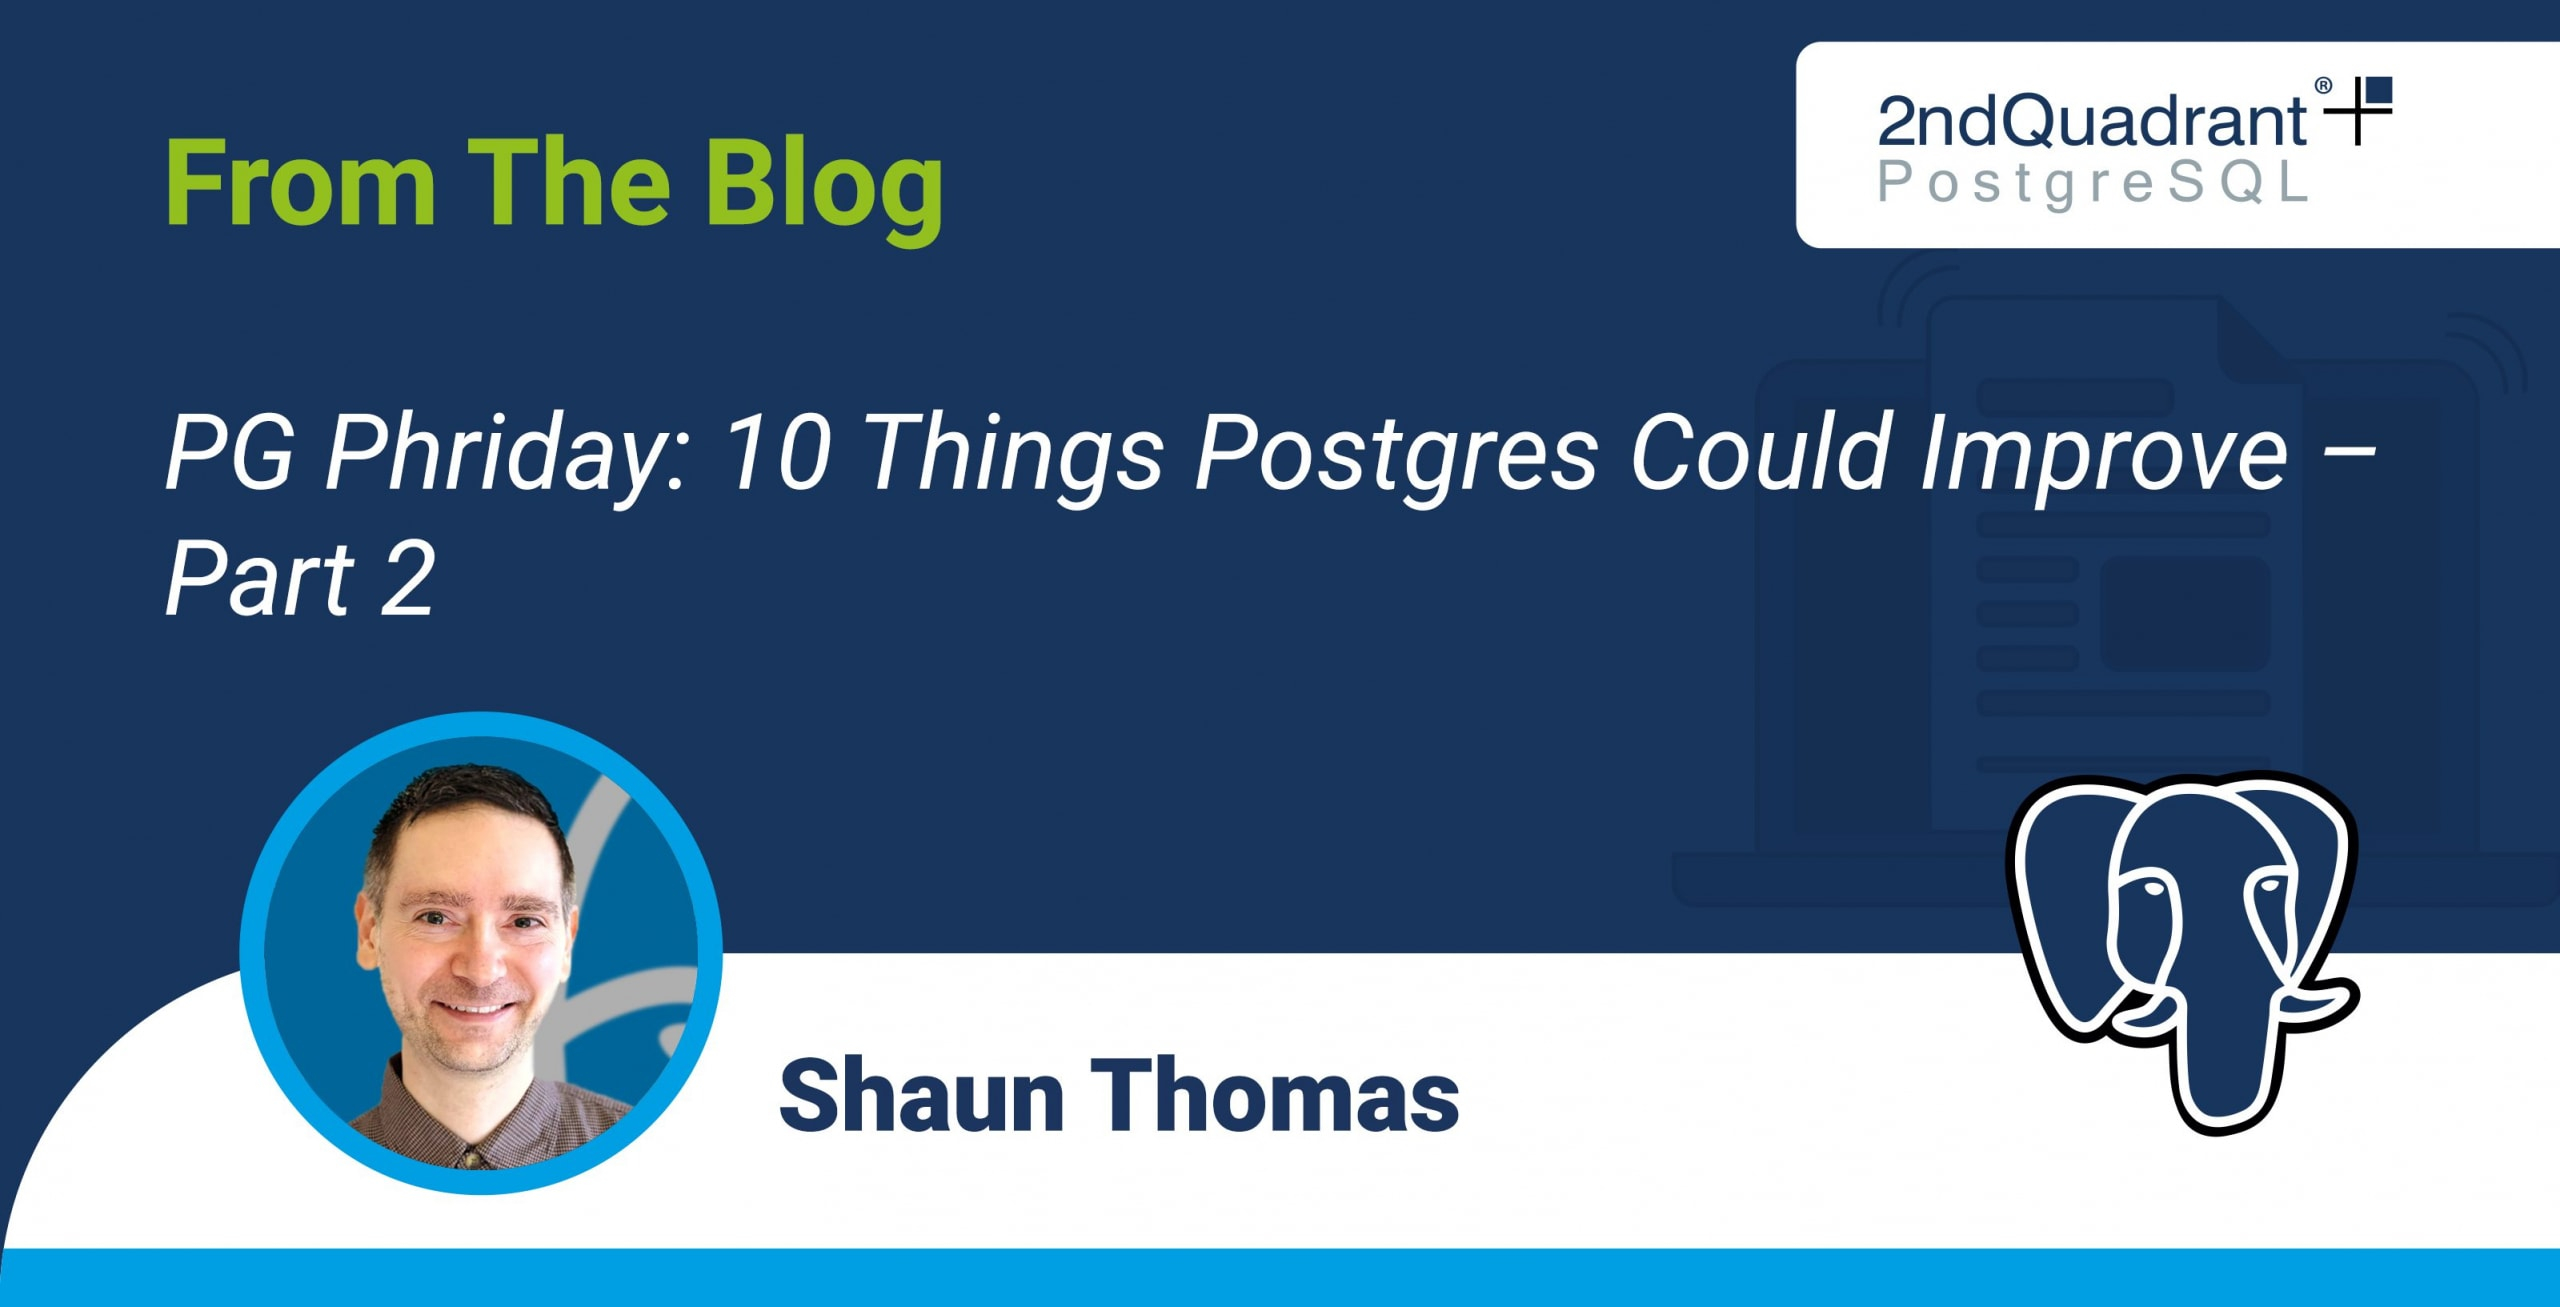 PG Phriday - 10 Things Postgres Could Improve – Part 2